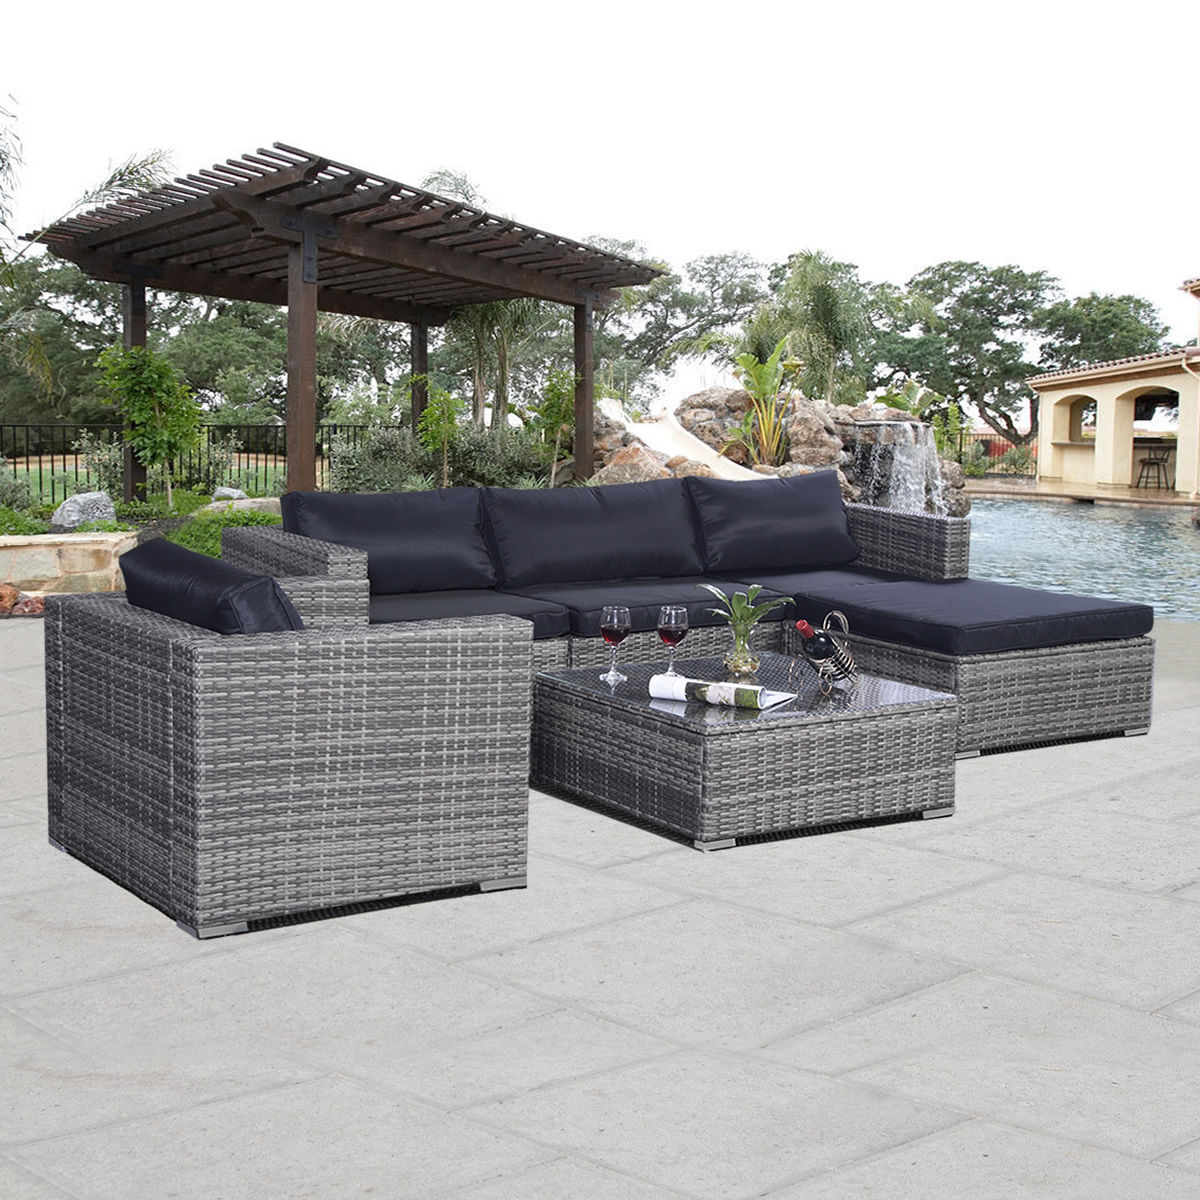 Costway 6pc Patio Sofa Furniture Set Pe Rattan Couch Outdoor Cushioned Gray by Costway